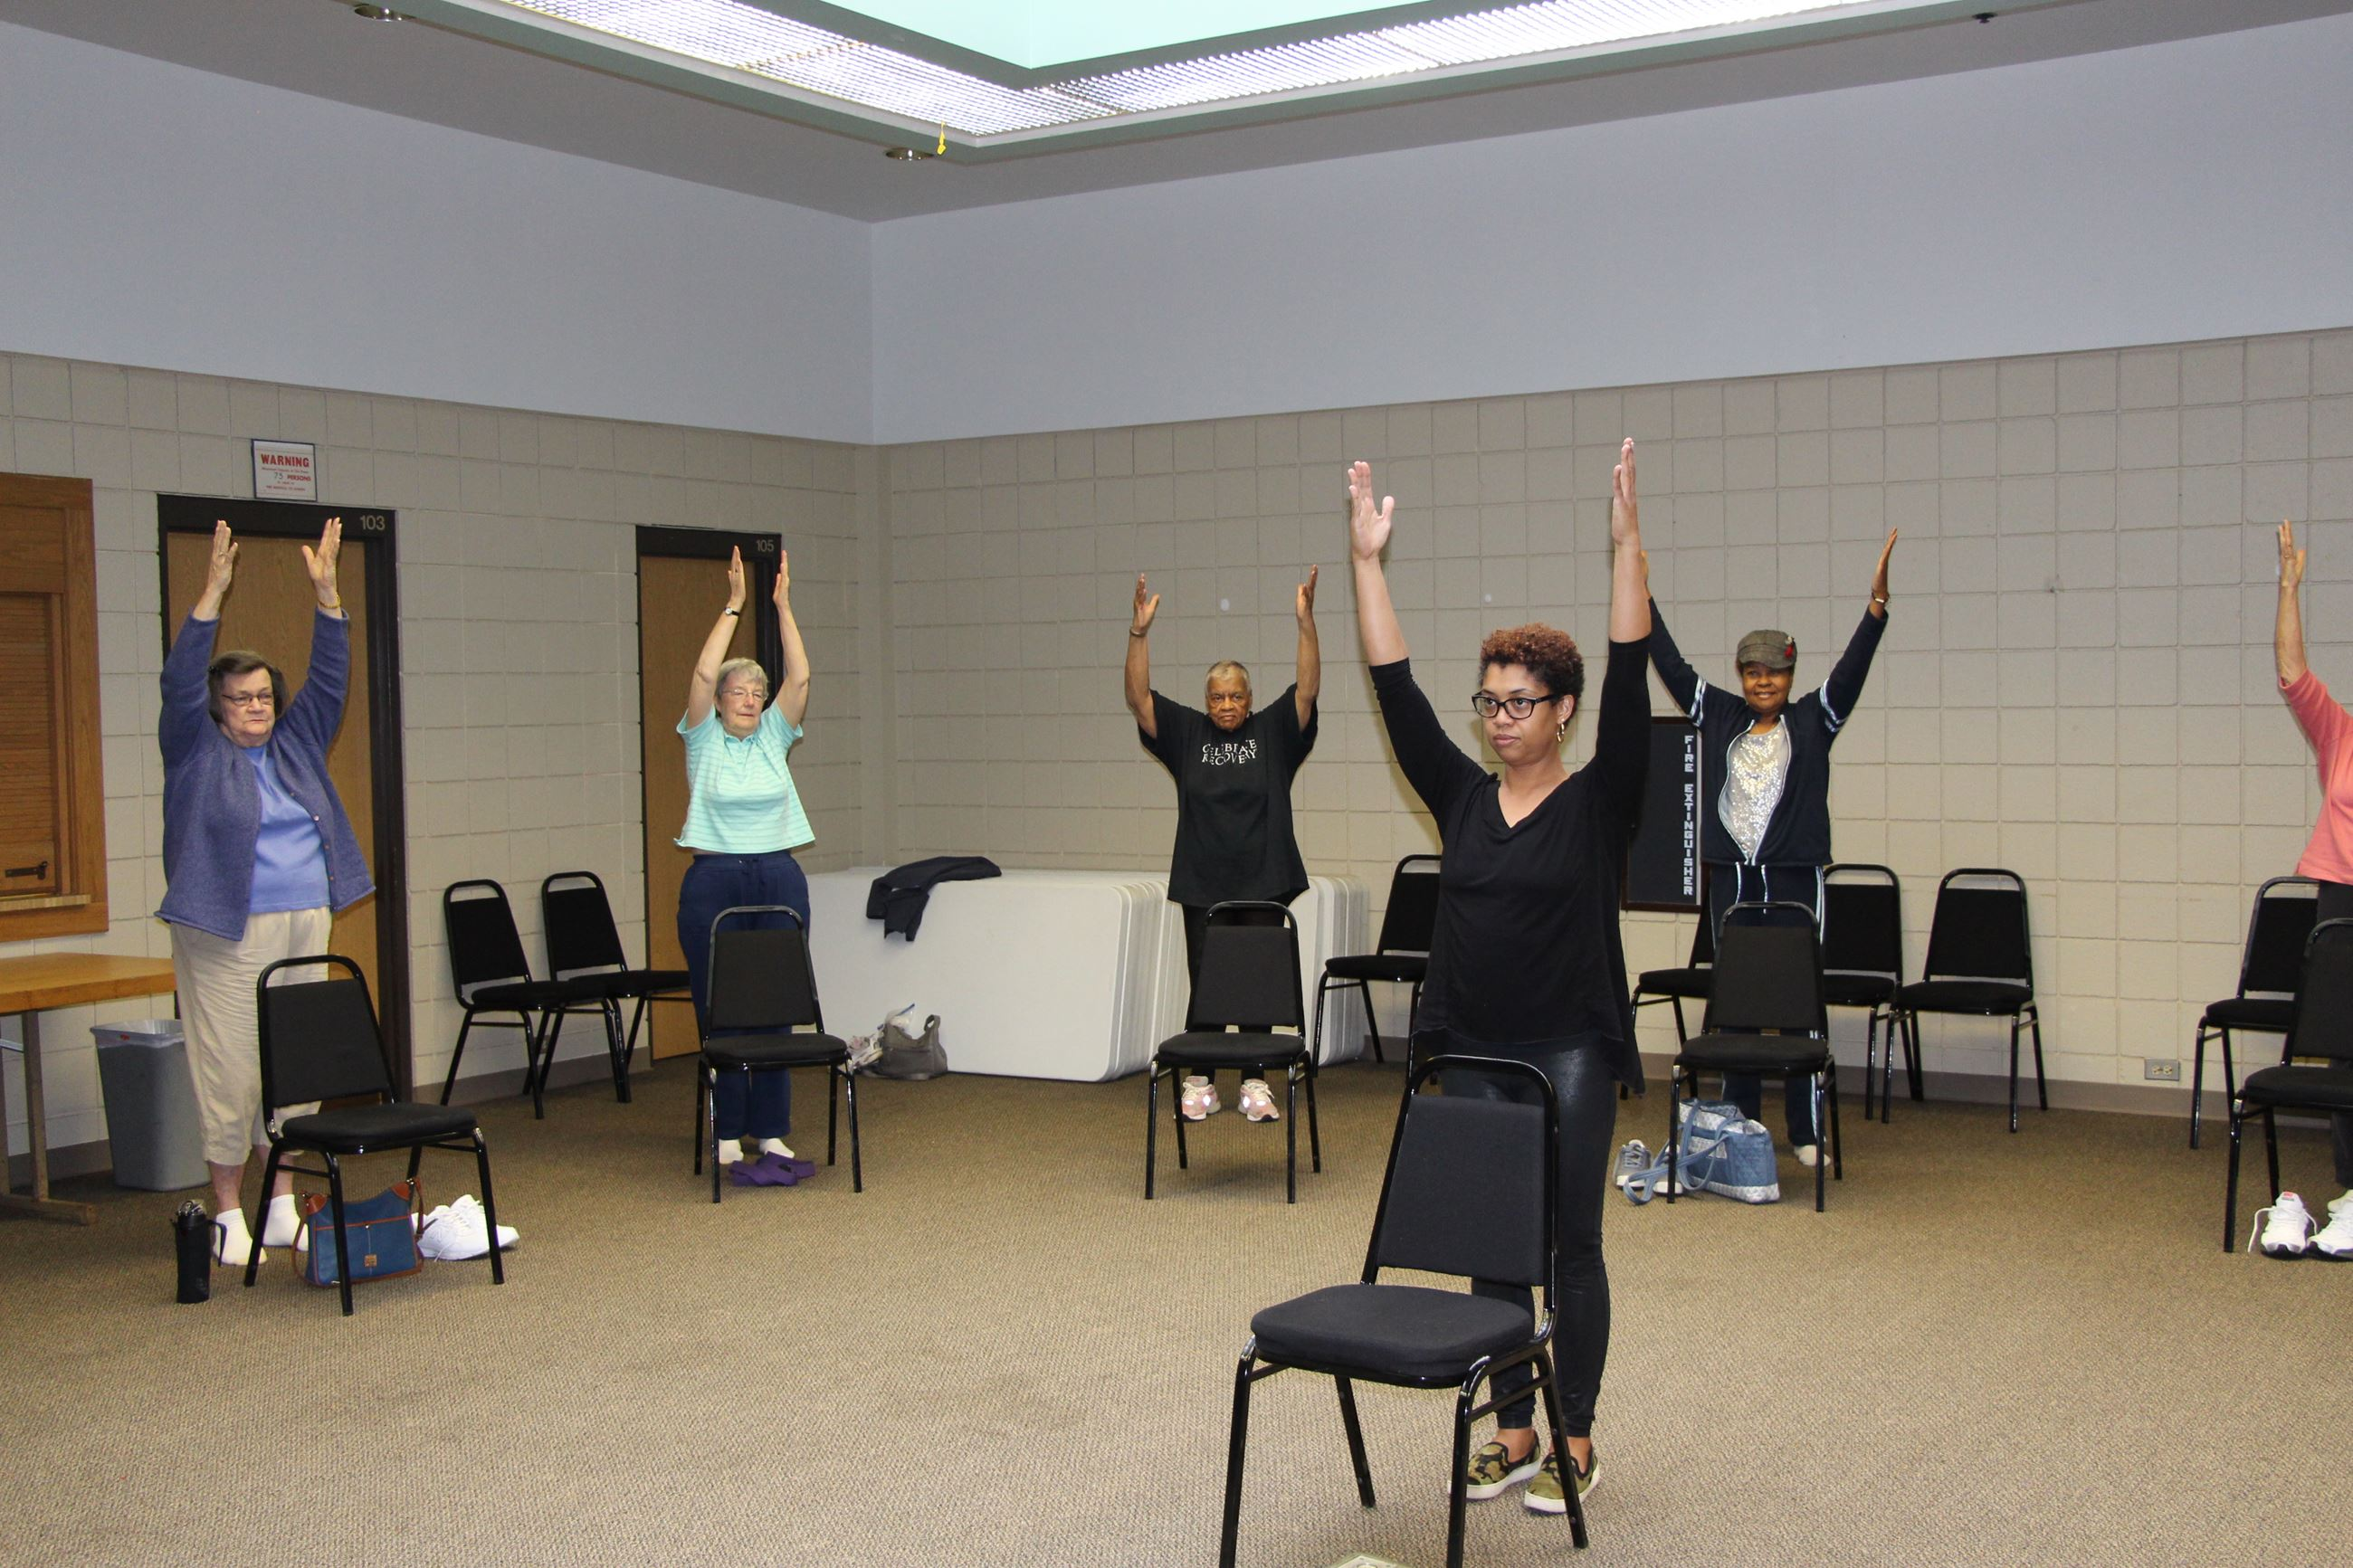 Older Adults doing Chair Yoga